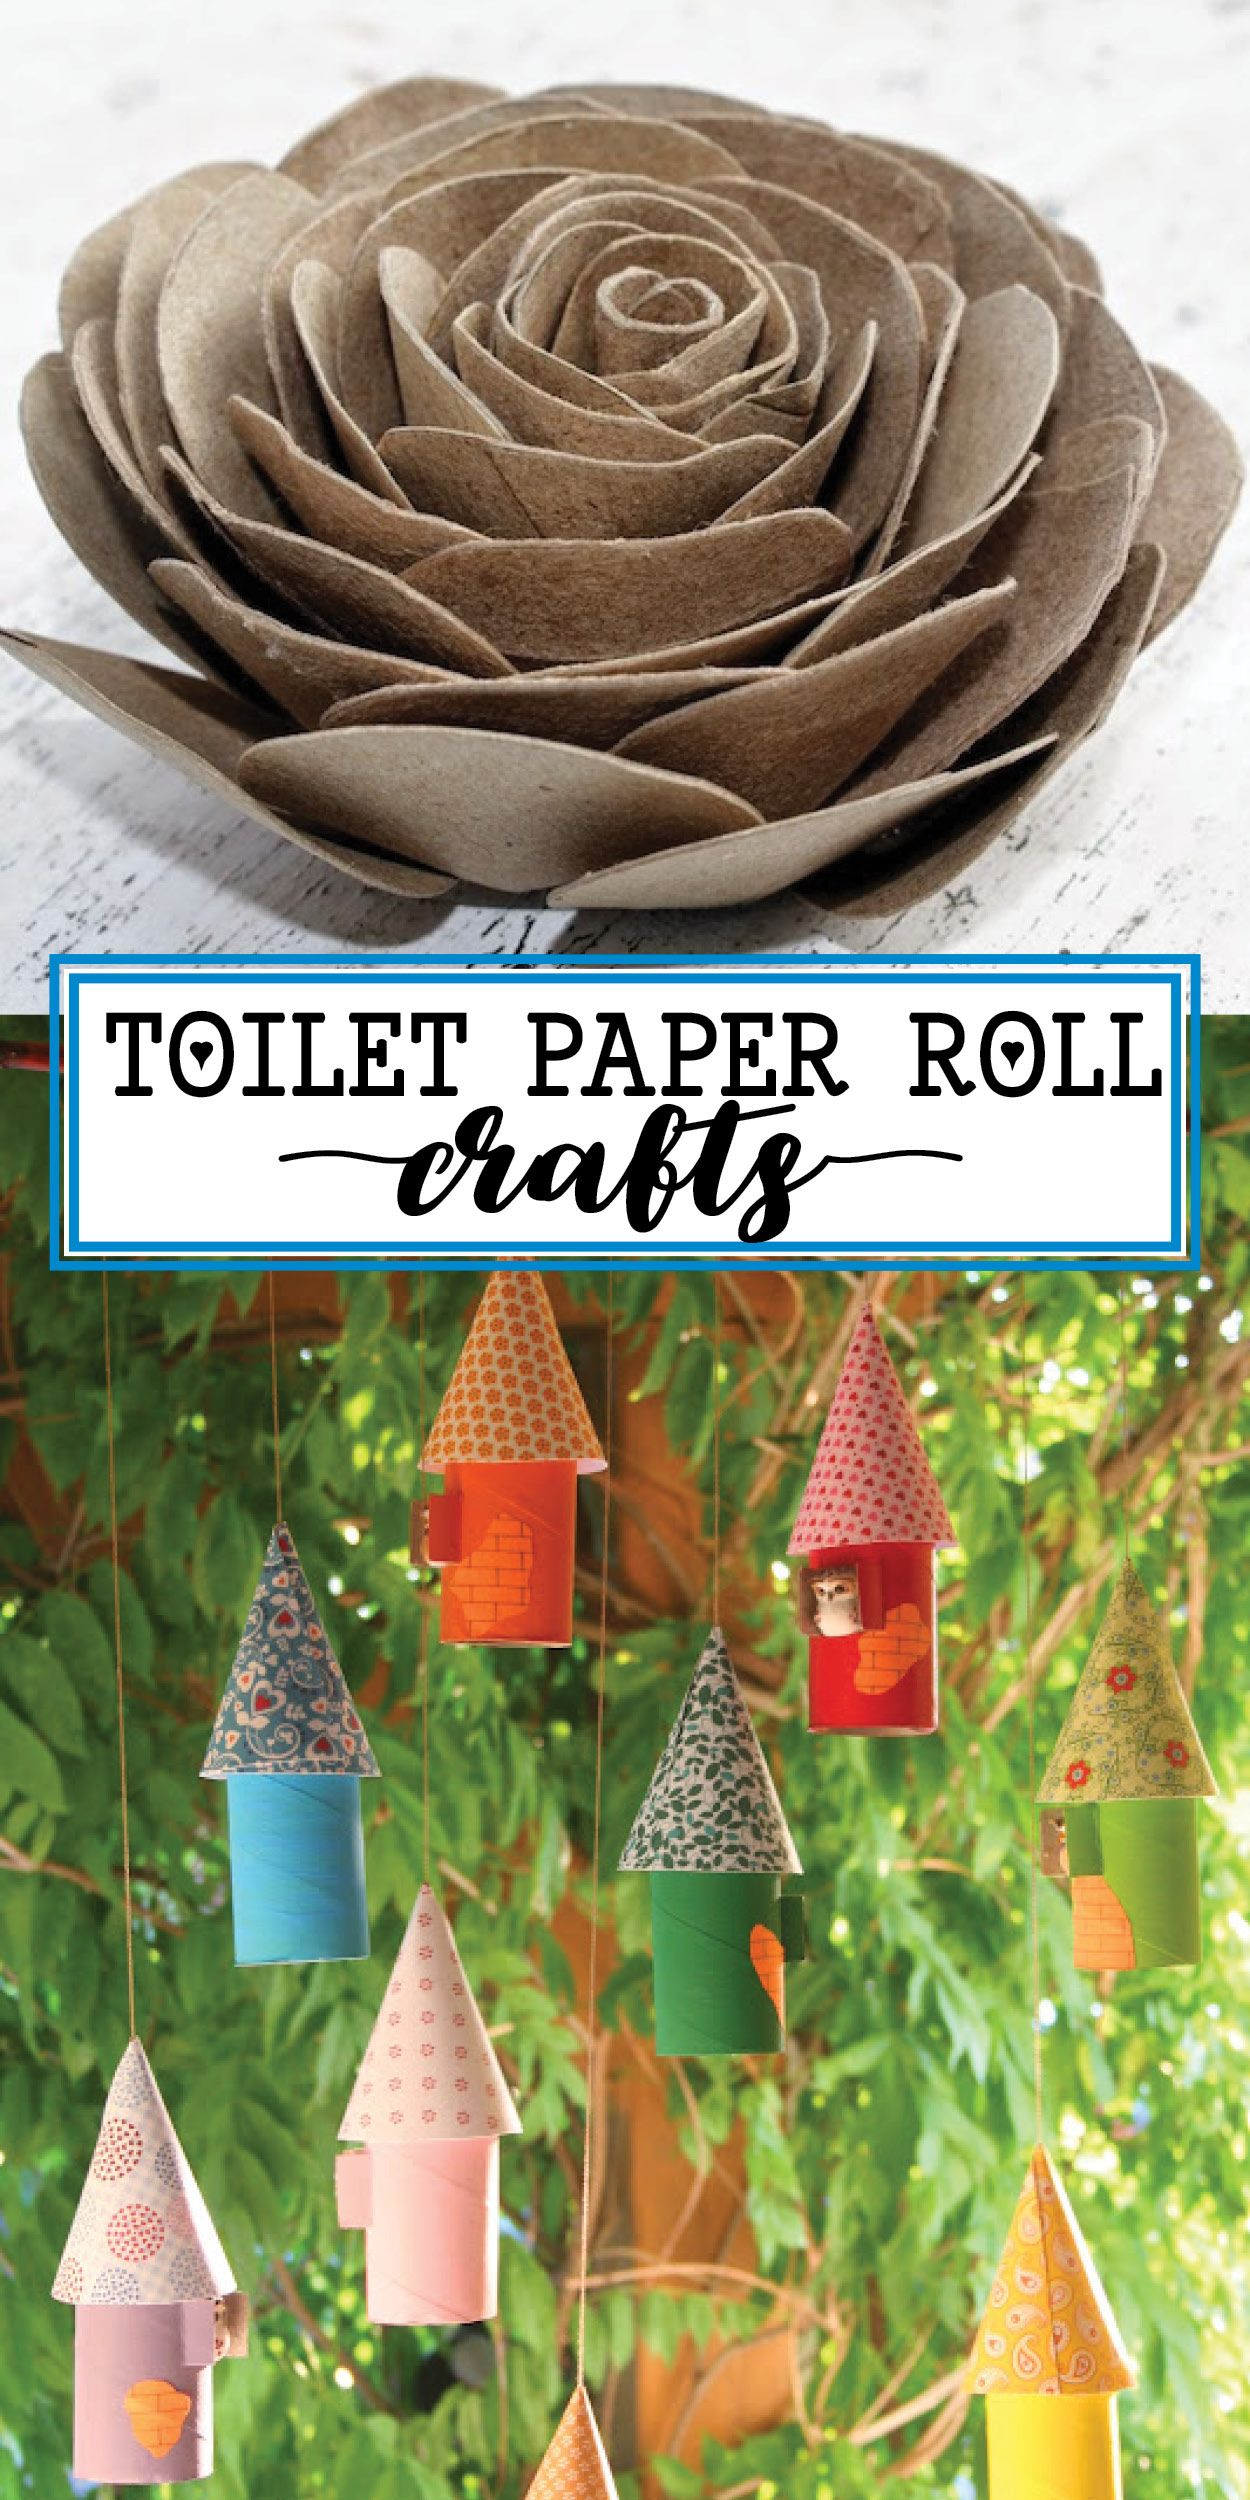 Here's What You Can Do With All of Those Toilet Paper Rolls